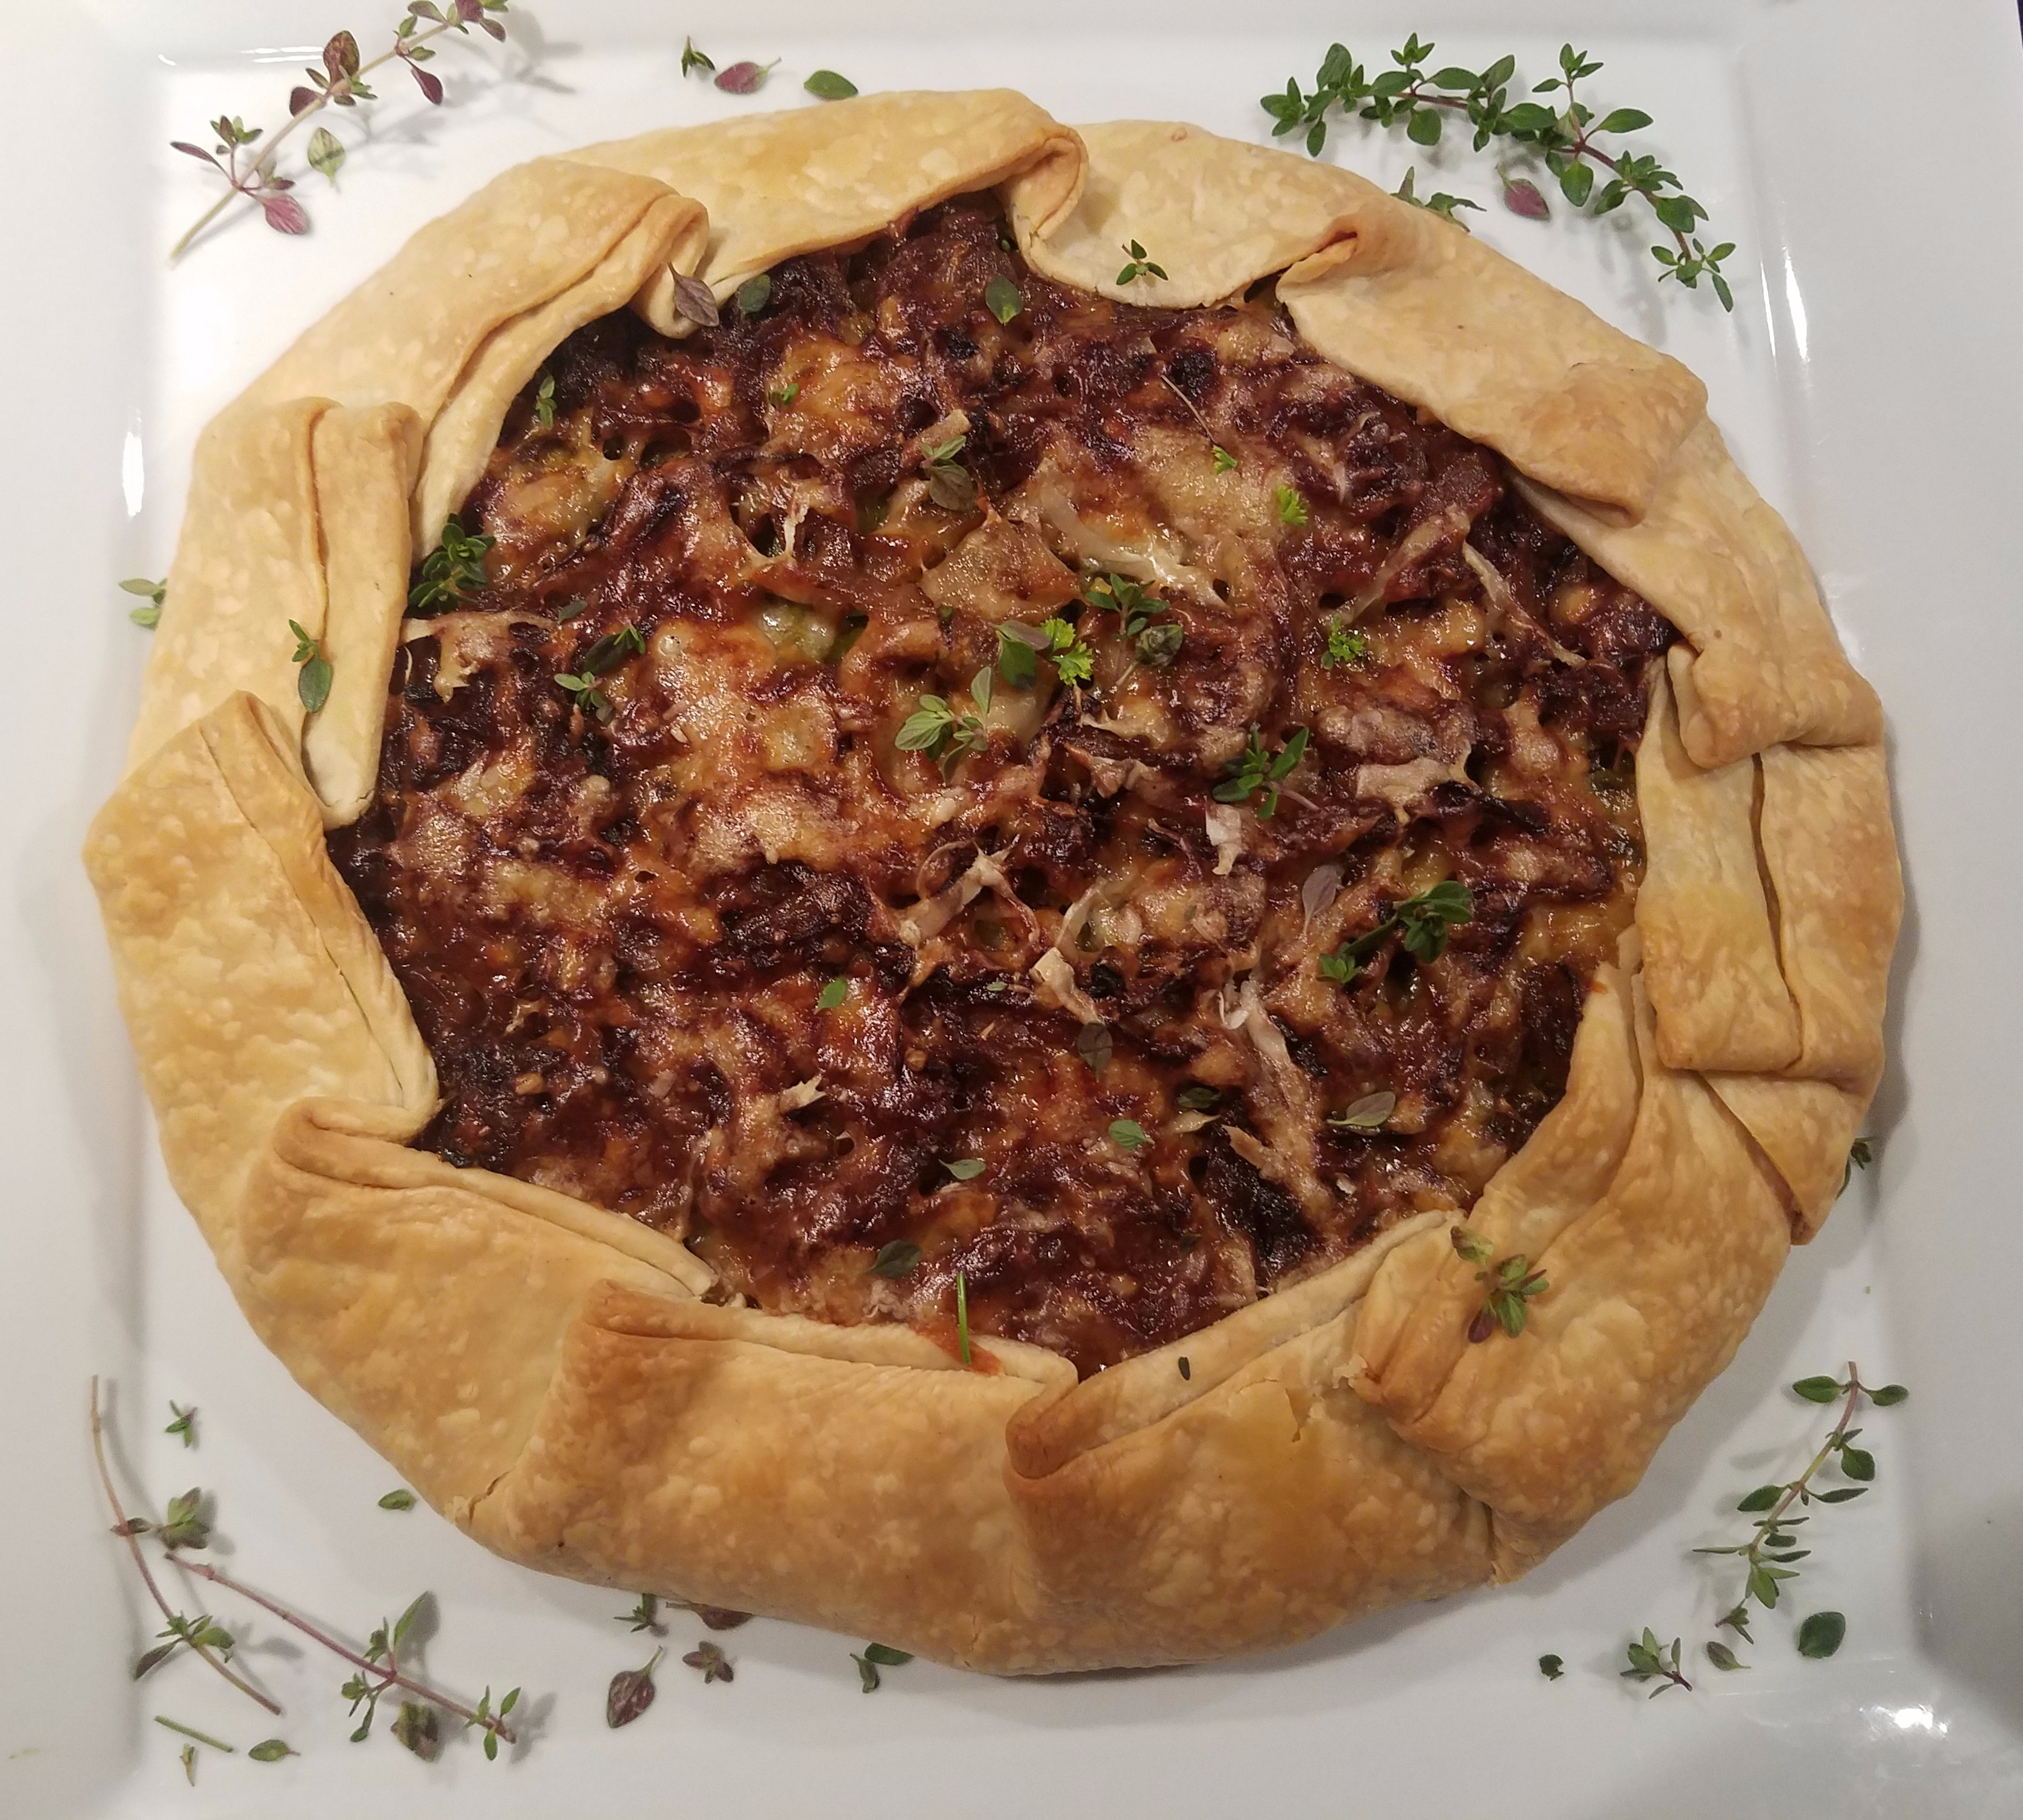 Meatless Monday – Caramelized Onion & Brussels Sprouts Galette